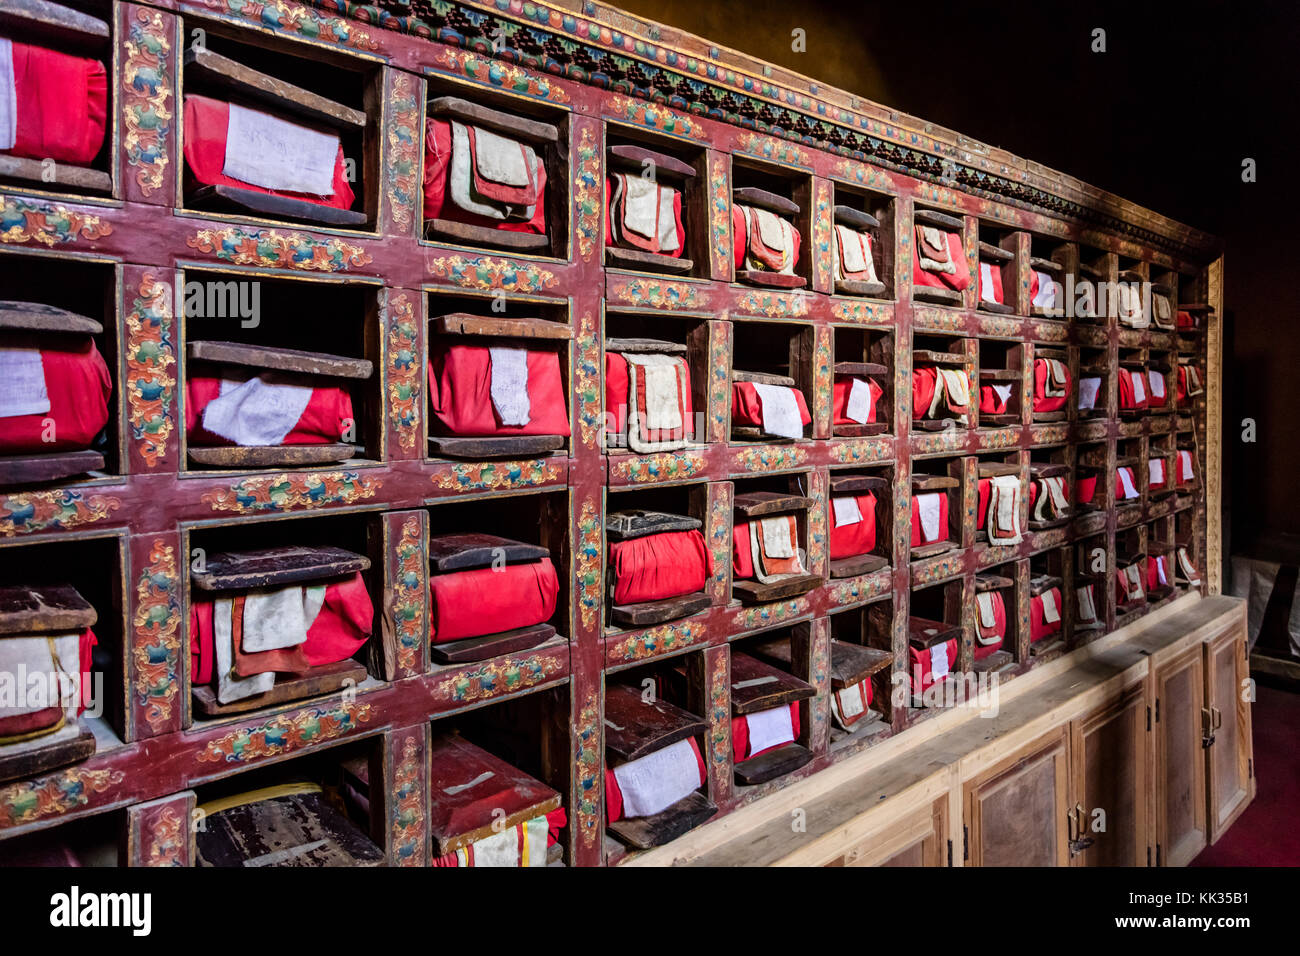 BUDDHIST SCRIPTURES inside LEH PALACE which was originally build by Sengge Namgyal in the 16th century and has been - Stock Image